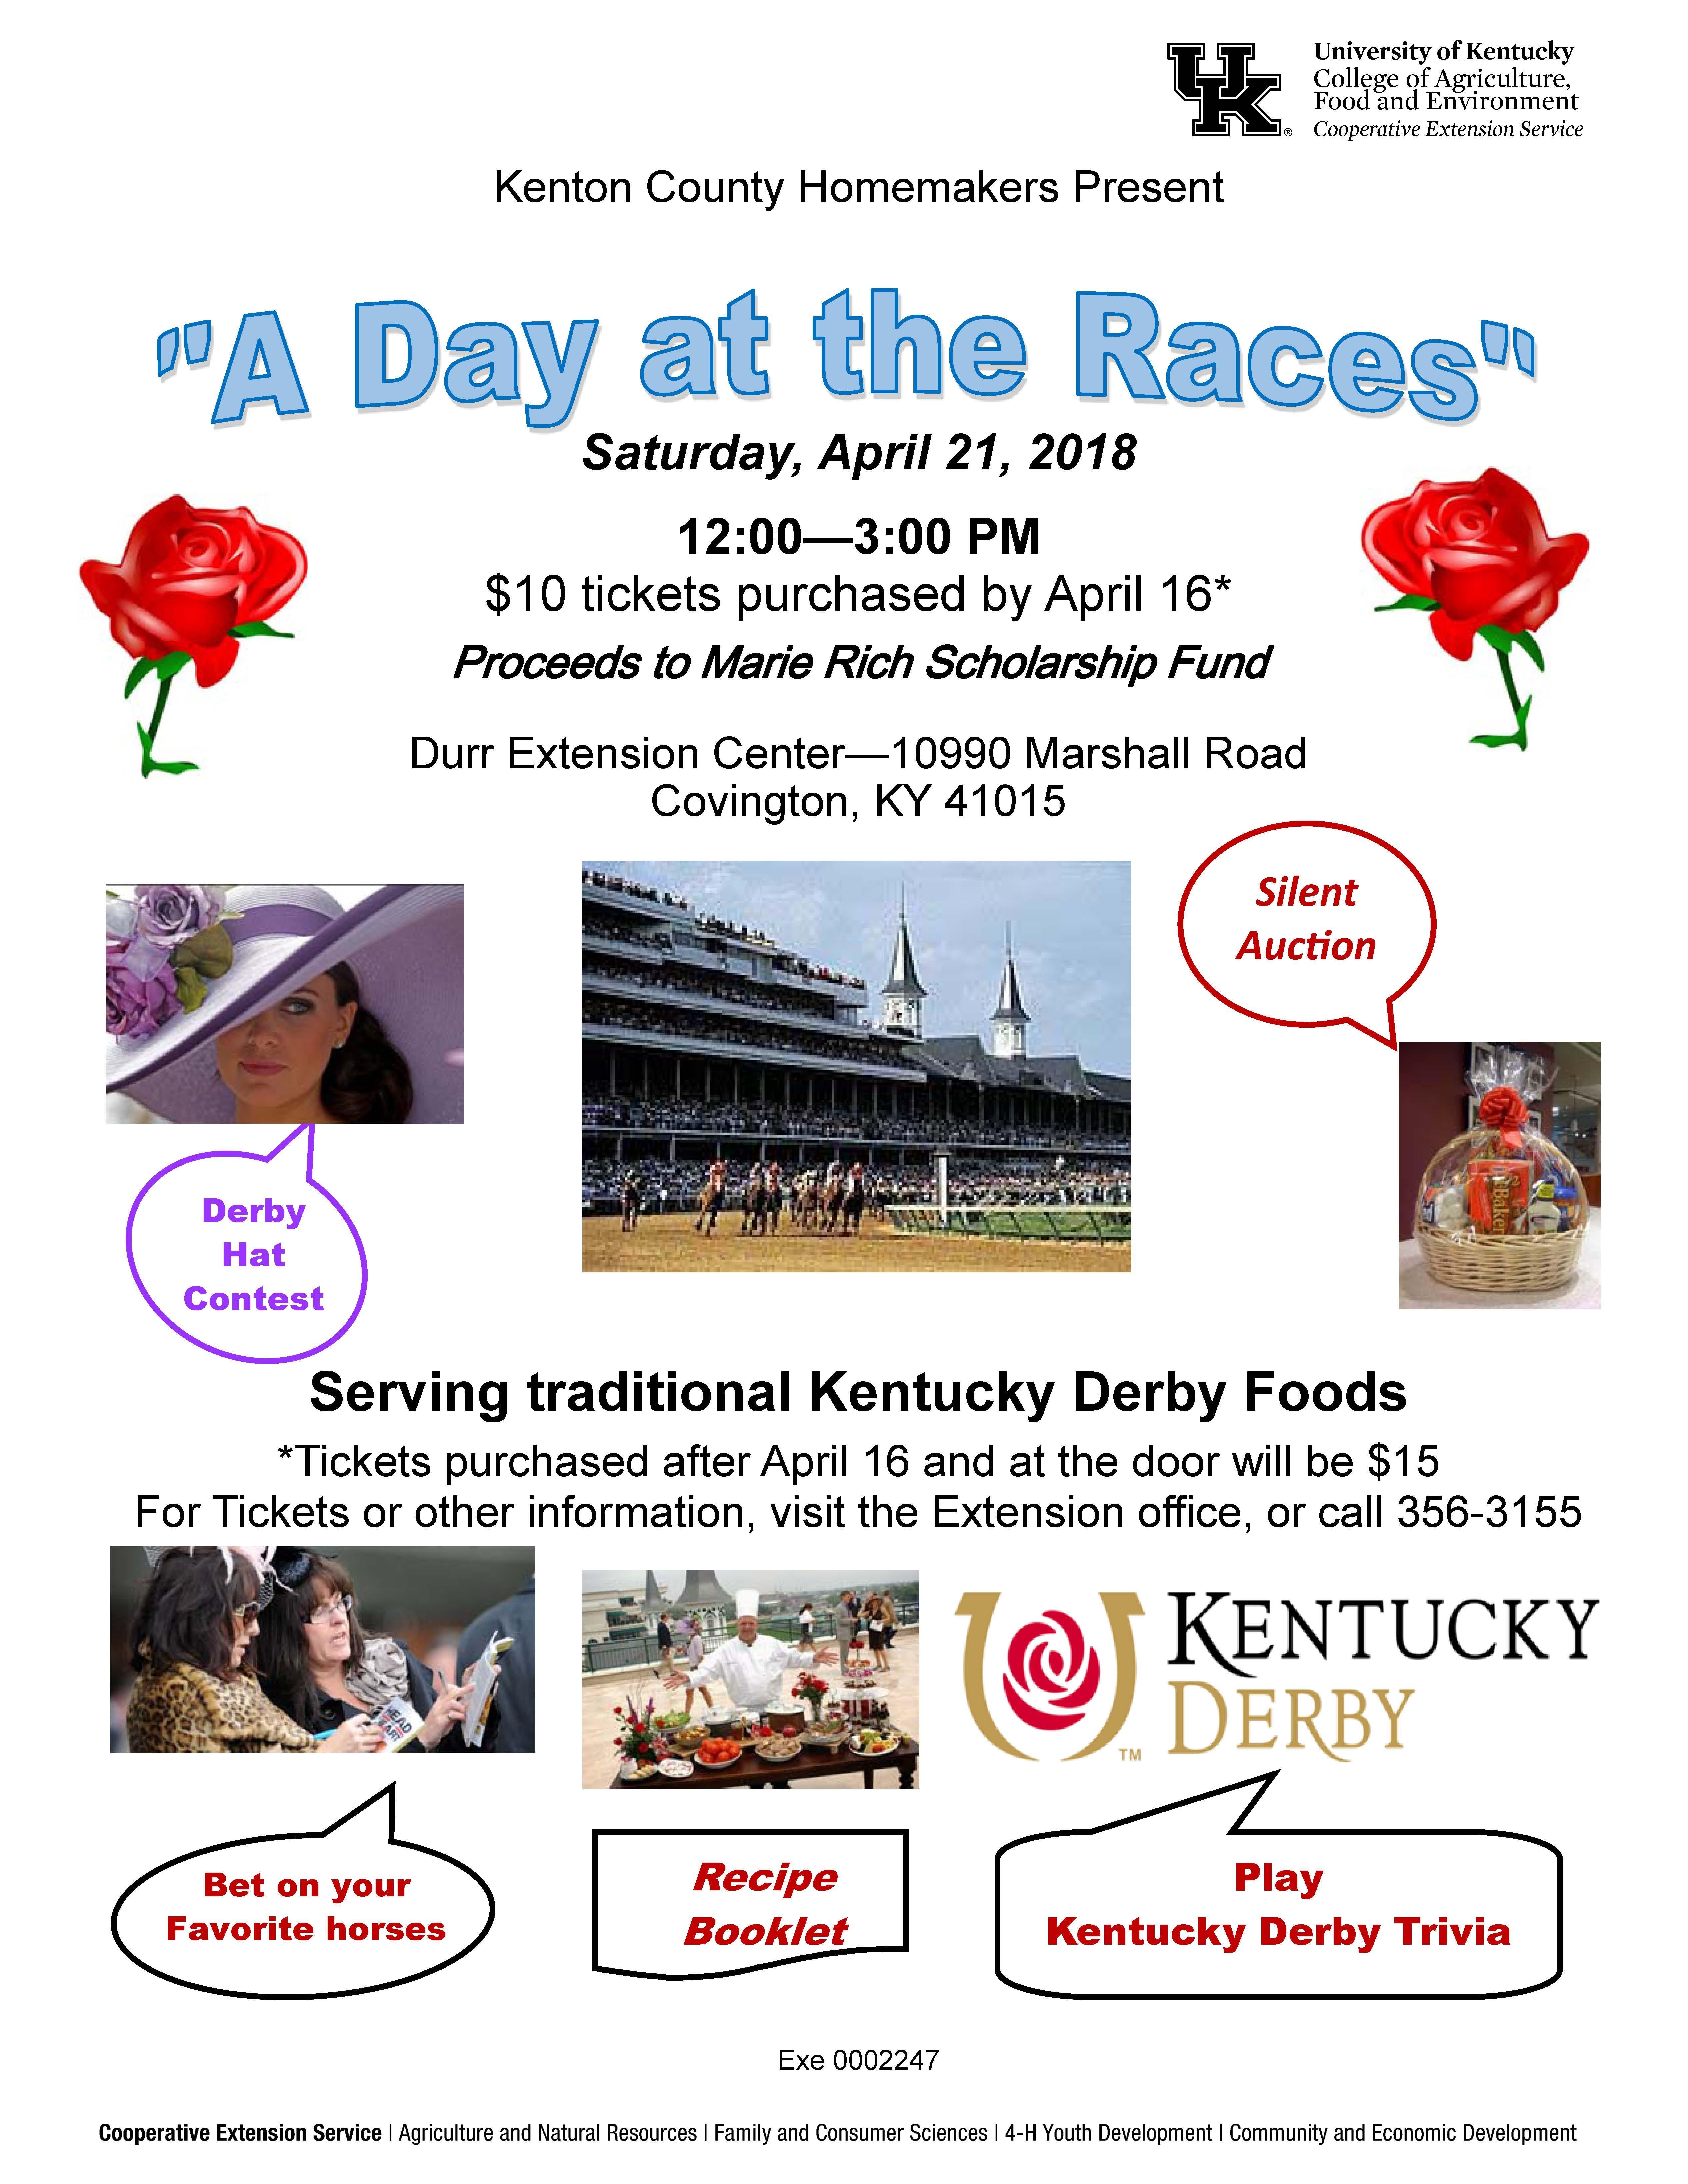 A day at the races flier